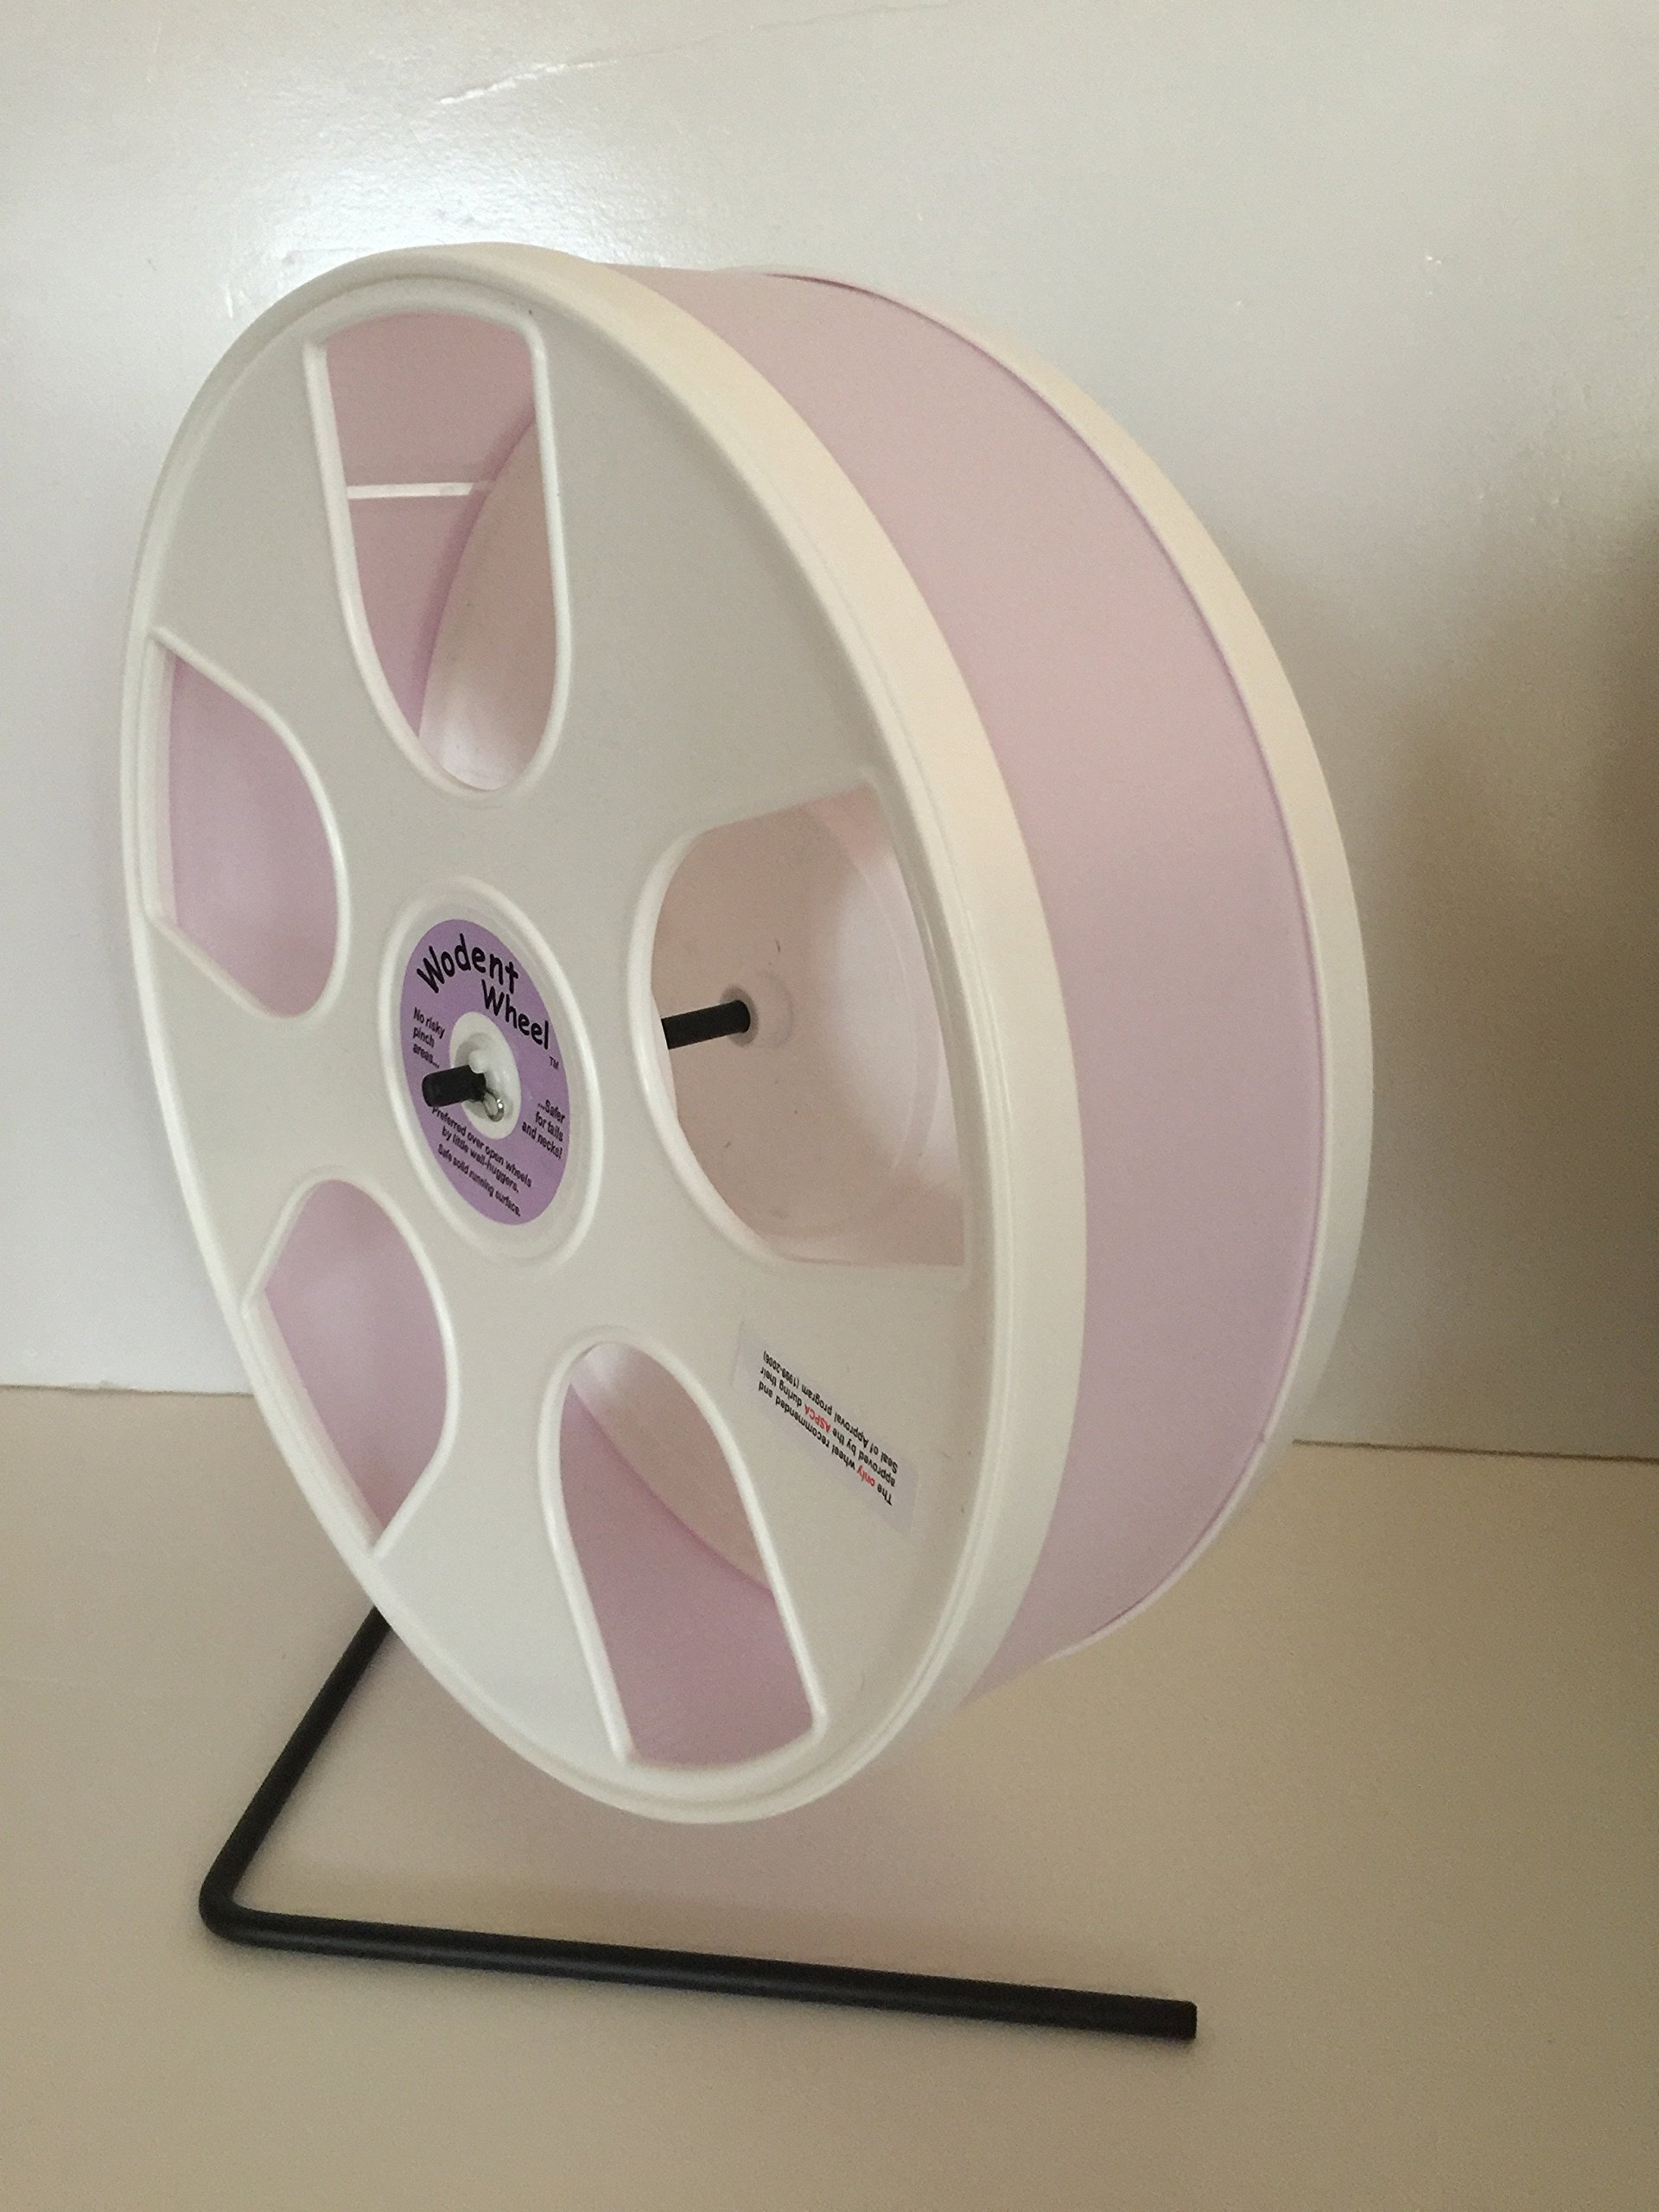 11'' WODENT Exercise Wheel (Height 12.3'') Lavender with White Panels by Unknown